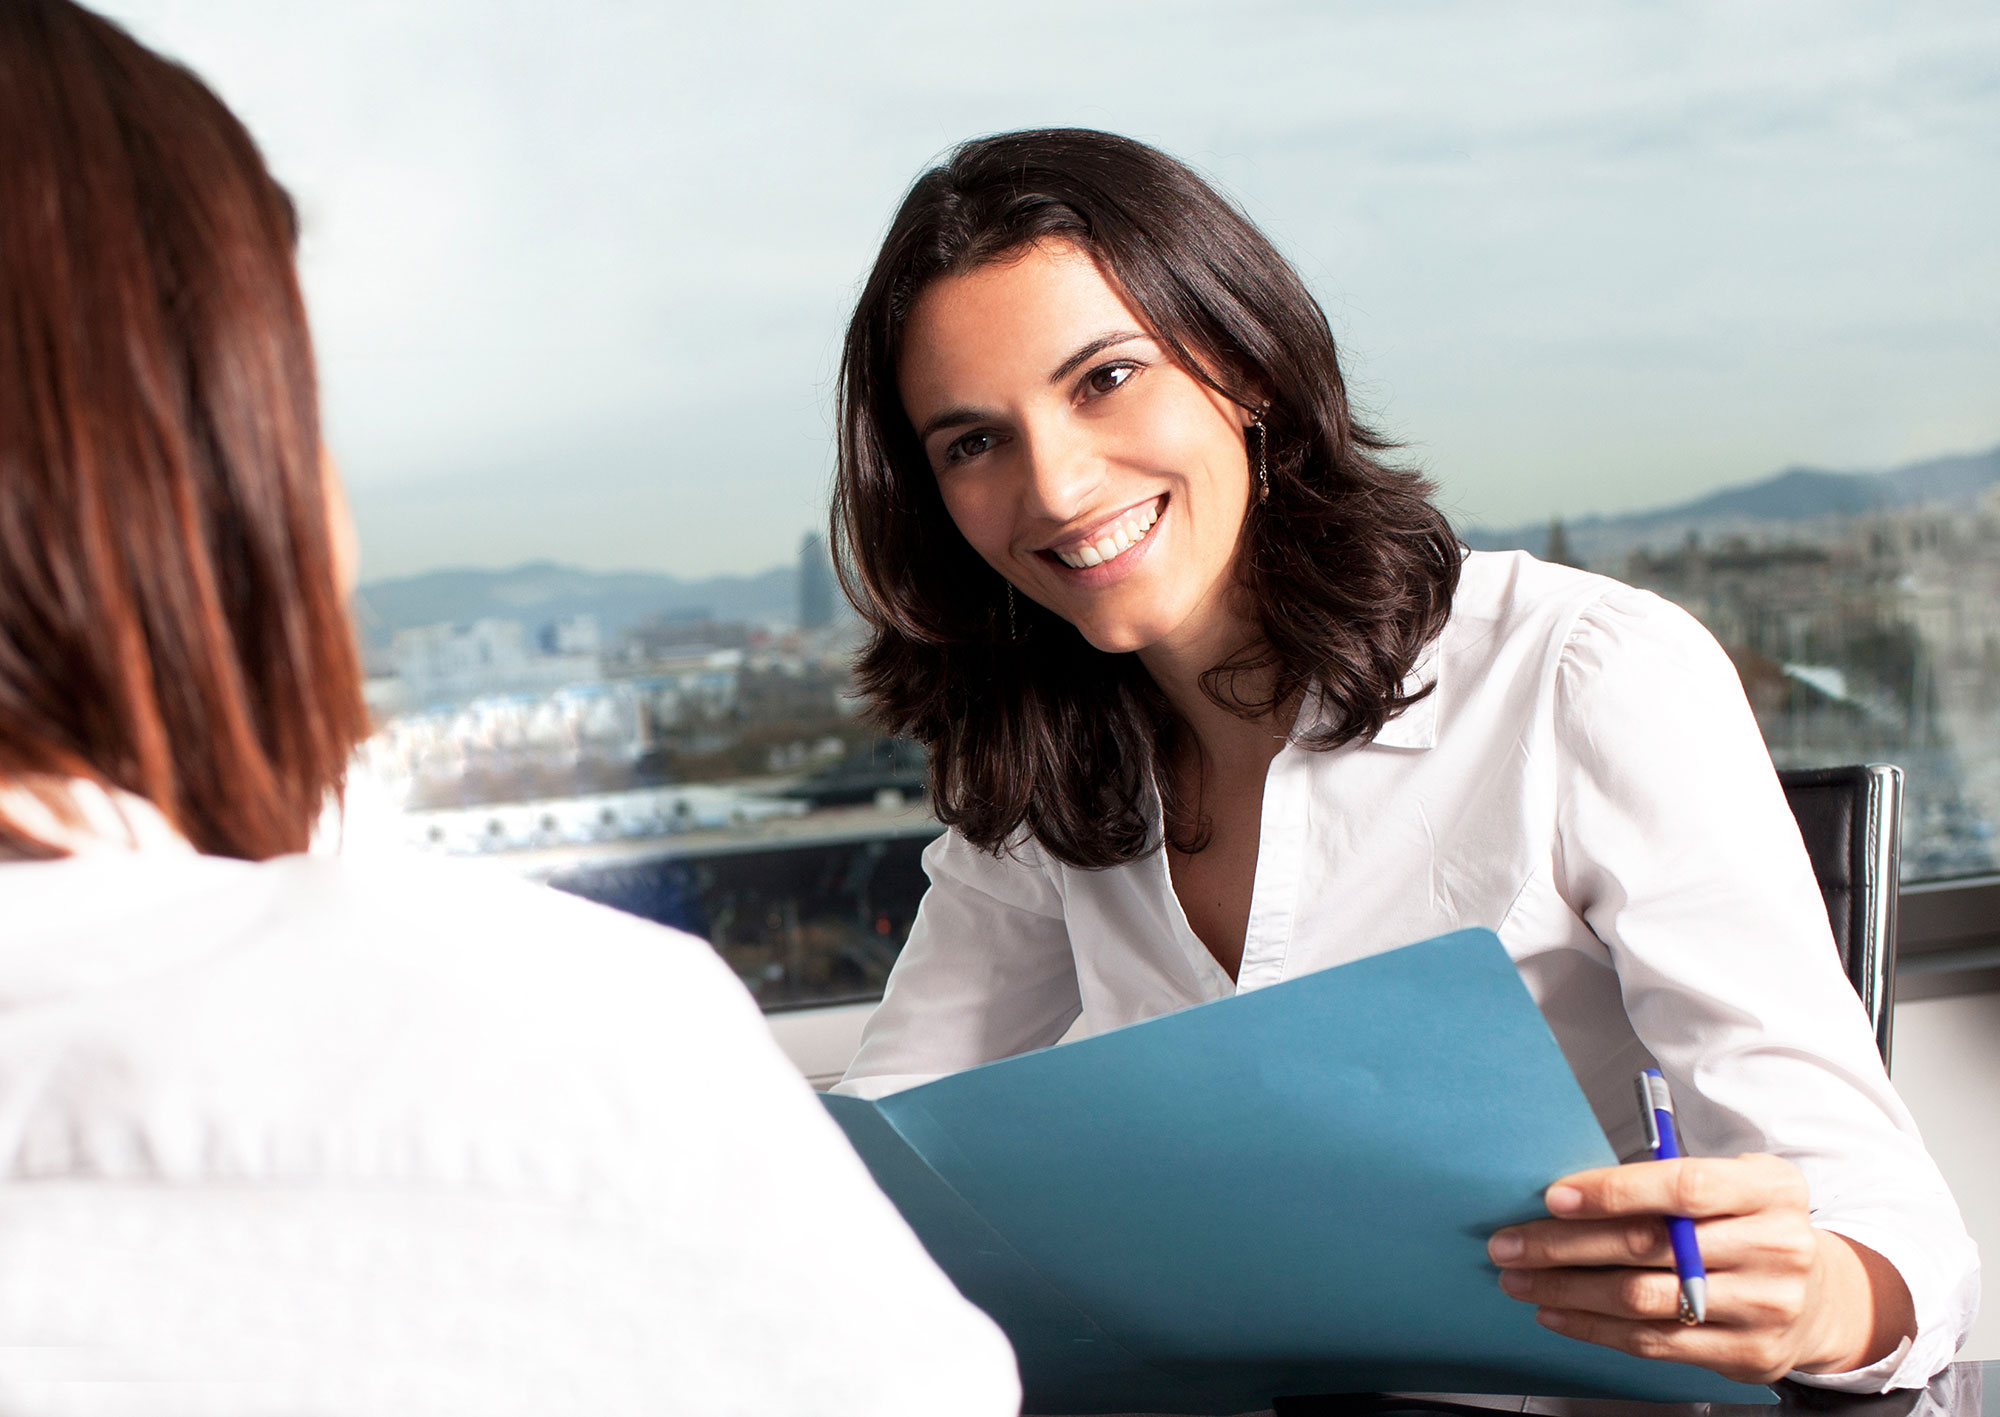 The right questions to ask during a job interview